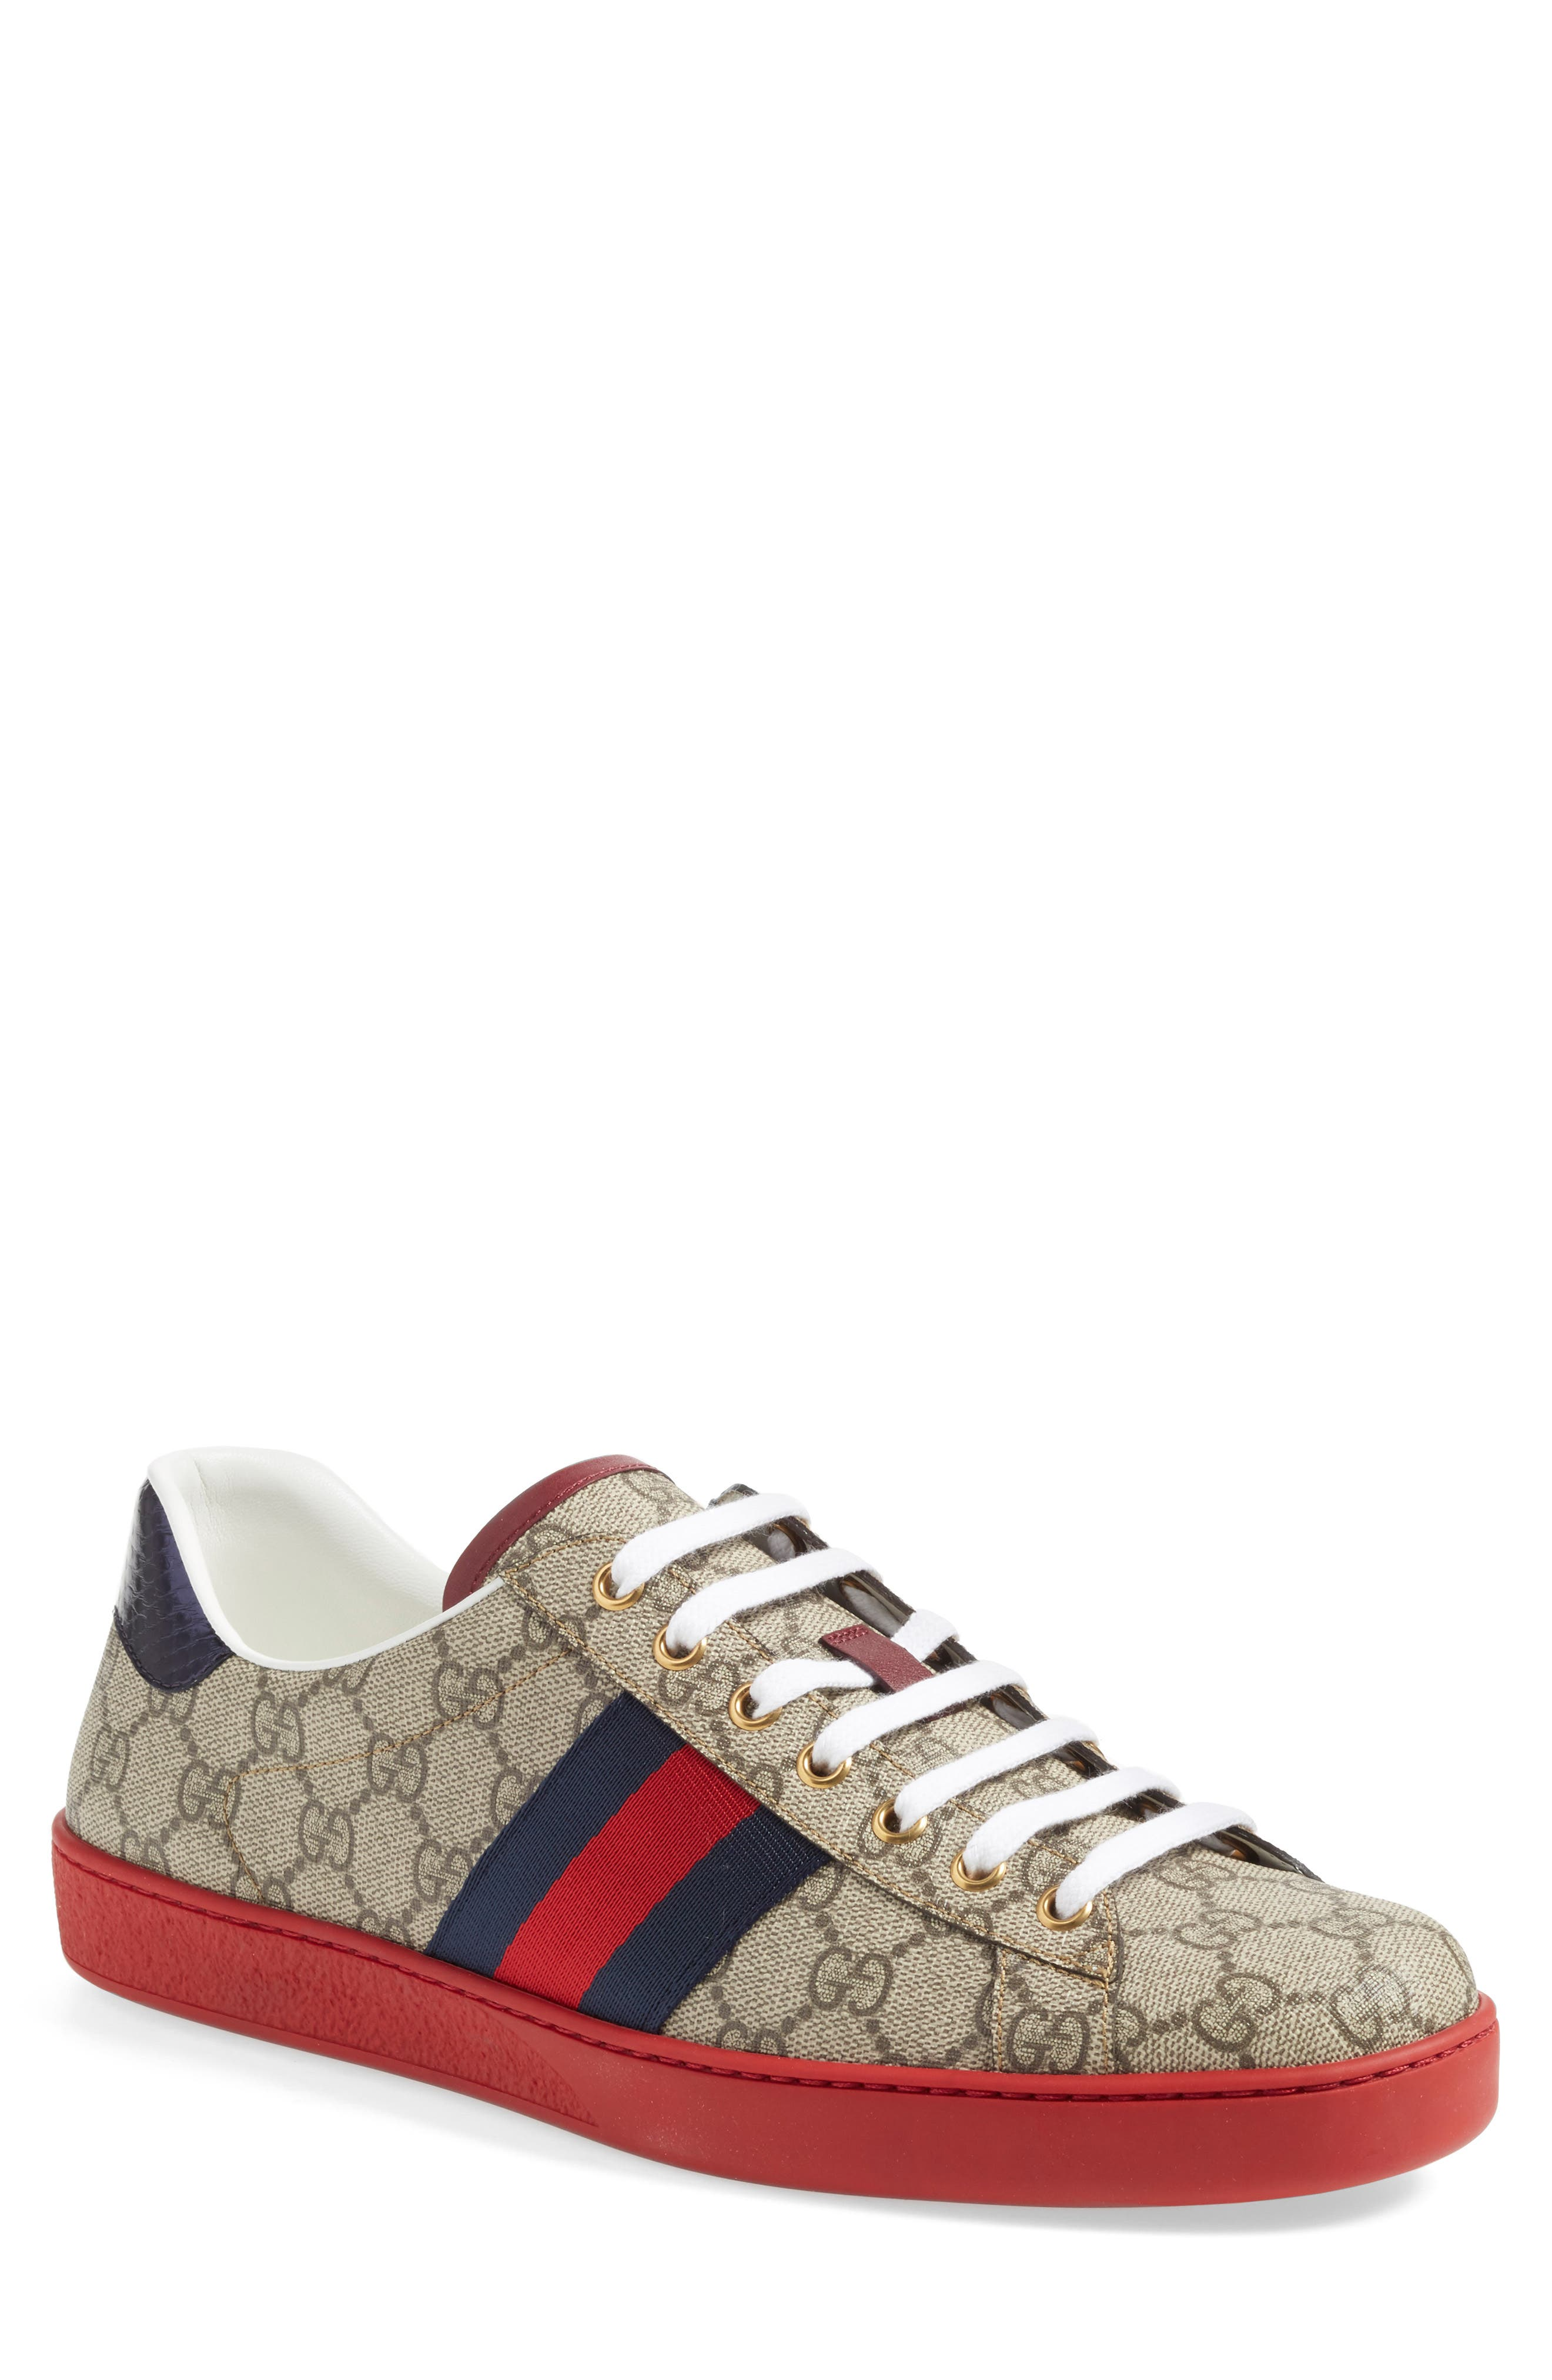 Gucci New Ace GG Supreme Low Top